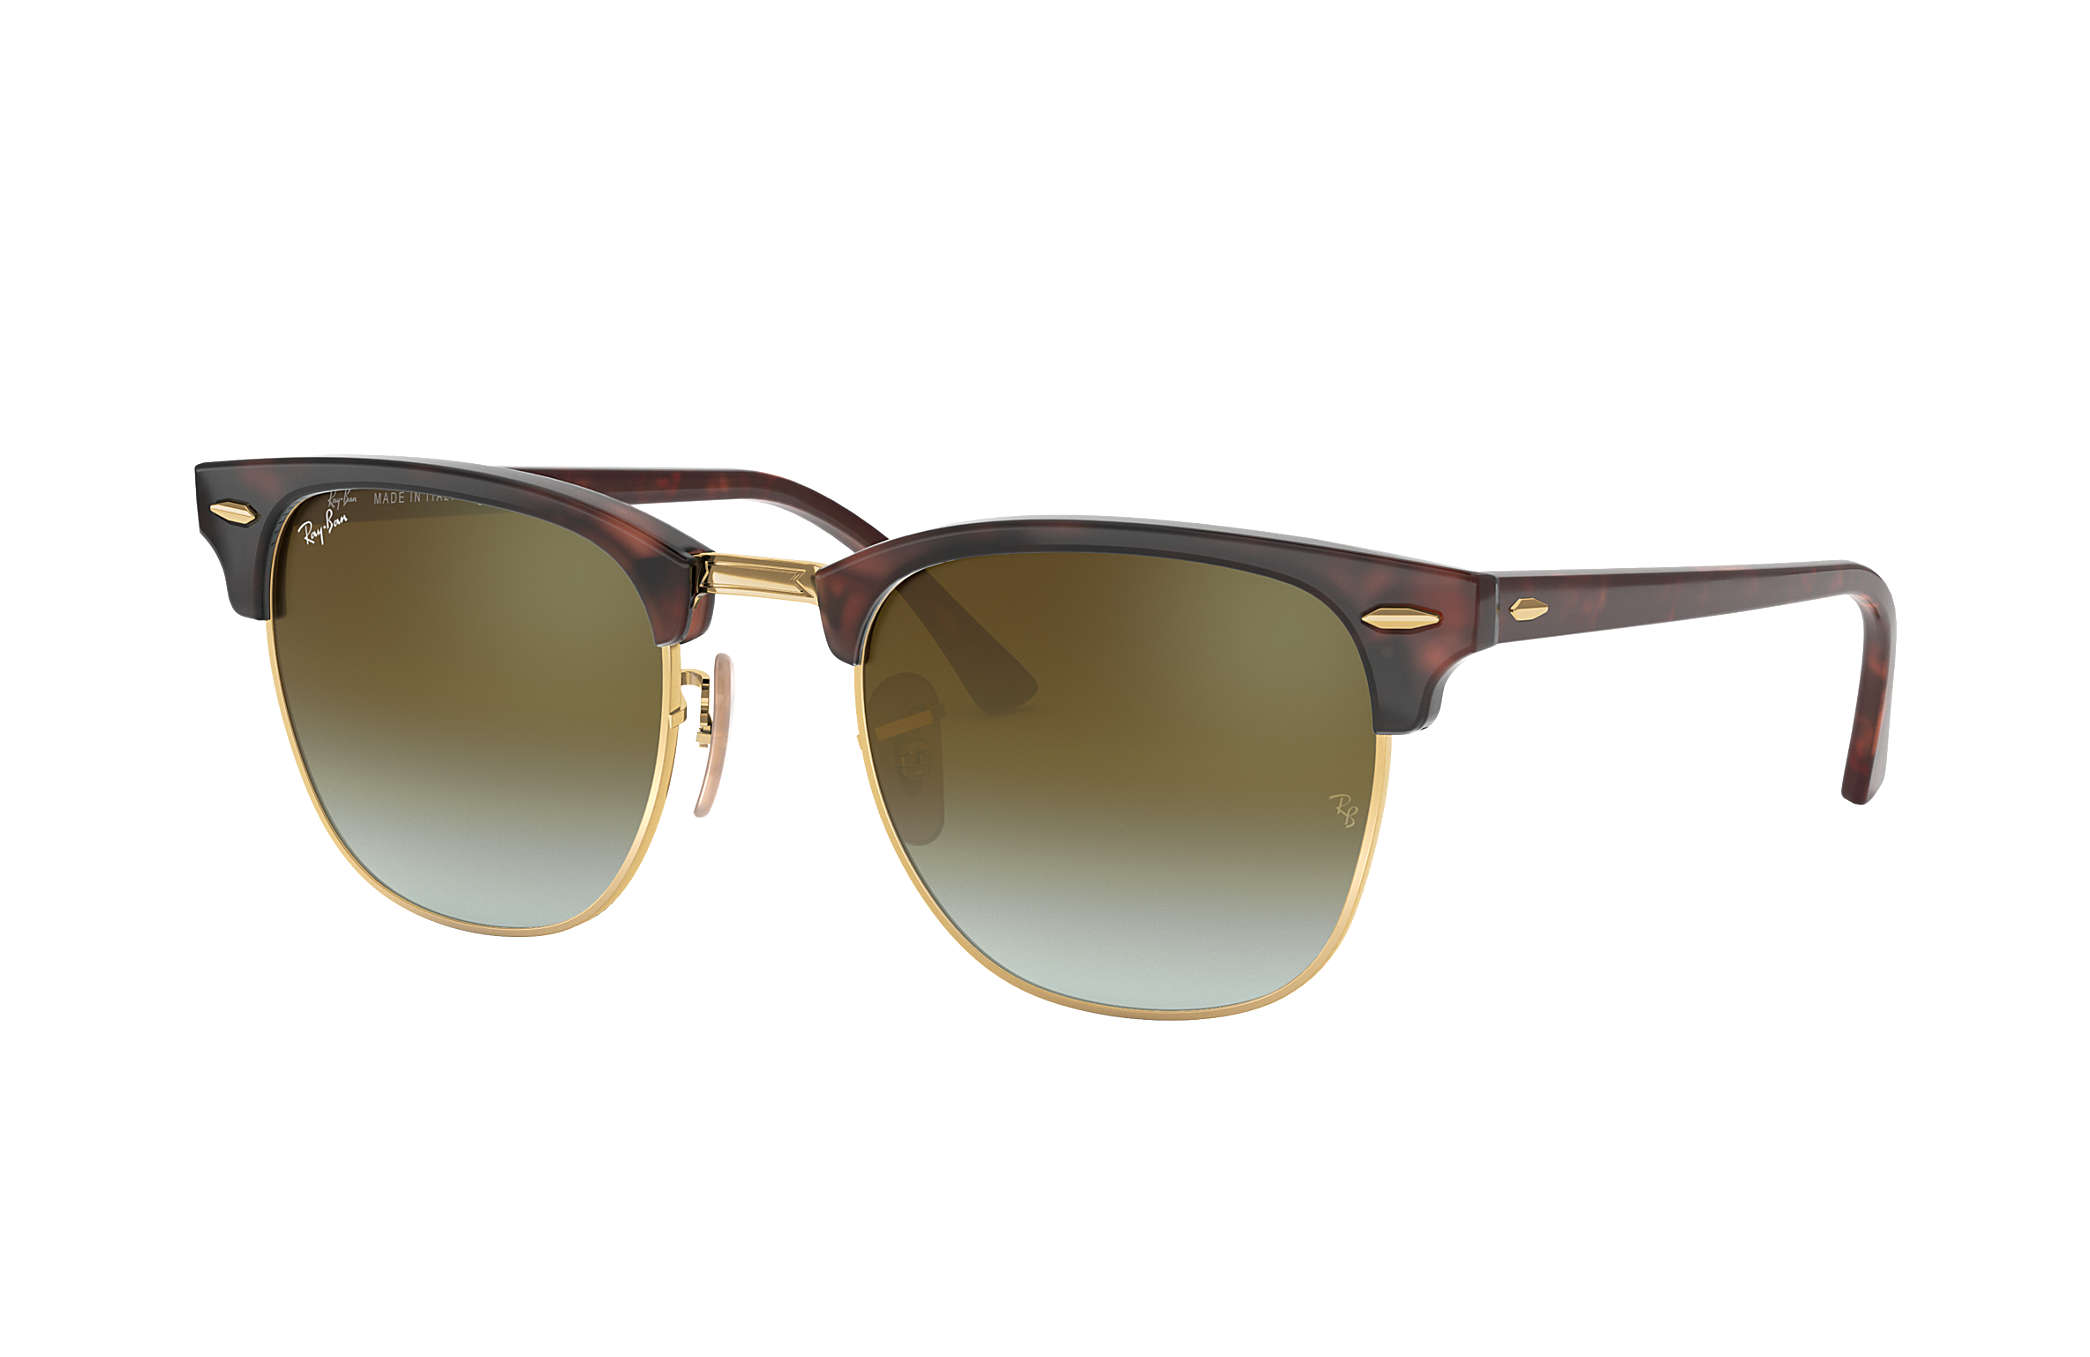 Ray-Ban Clubmaster Flash Lenses Gradient RB3016 Tortoise - Acetate ... bbeed3540e